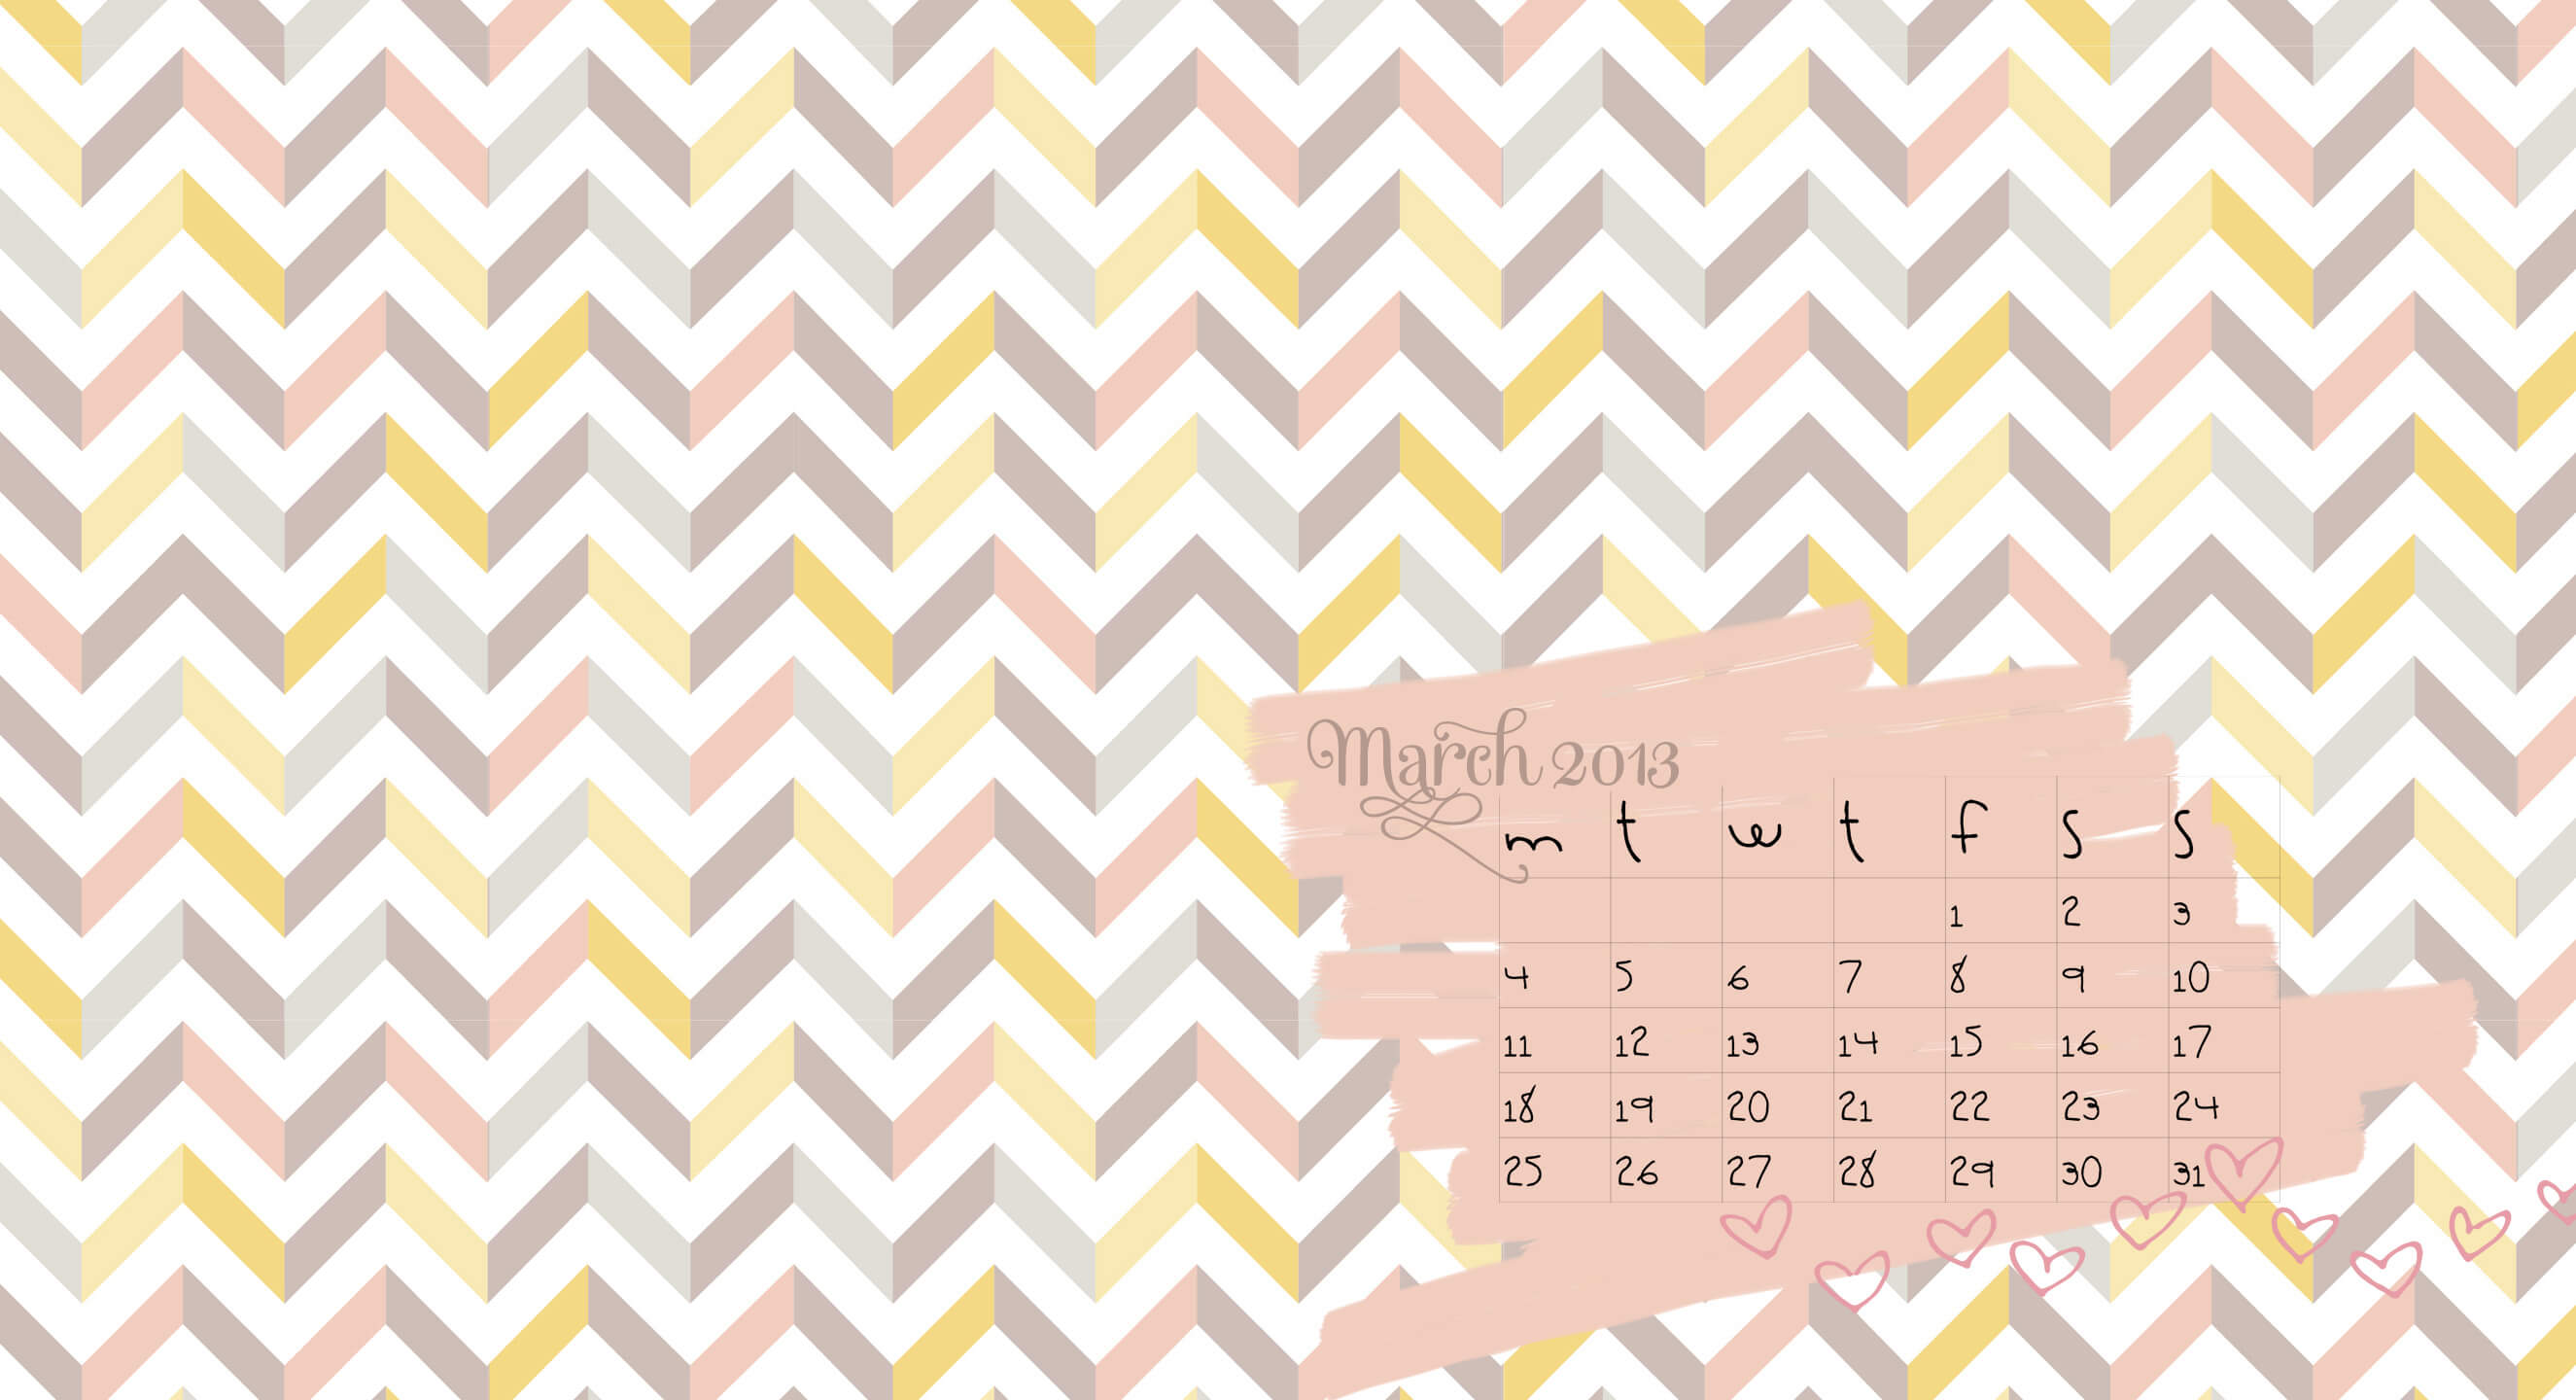 Free Desktop Iphone Ipad Wallpapers And Calendars For March